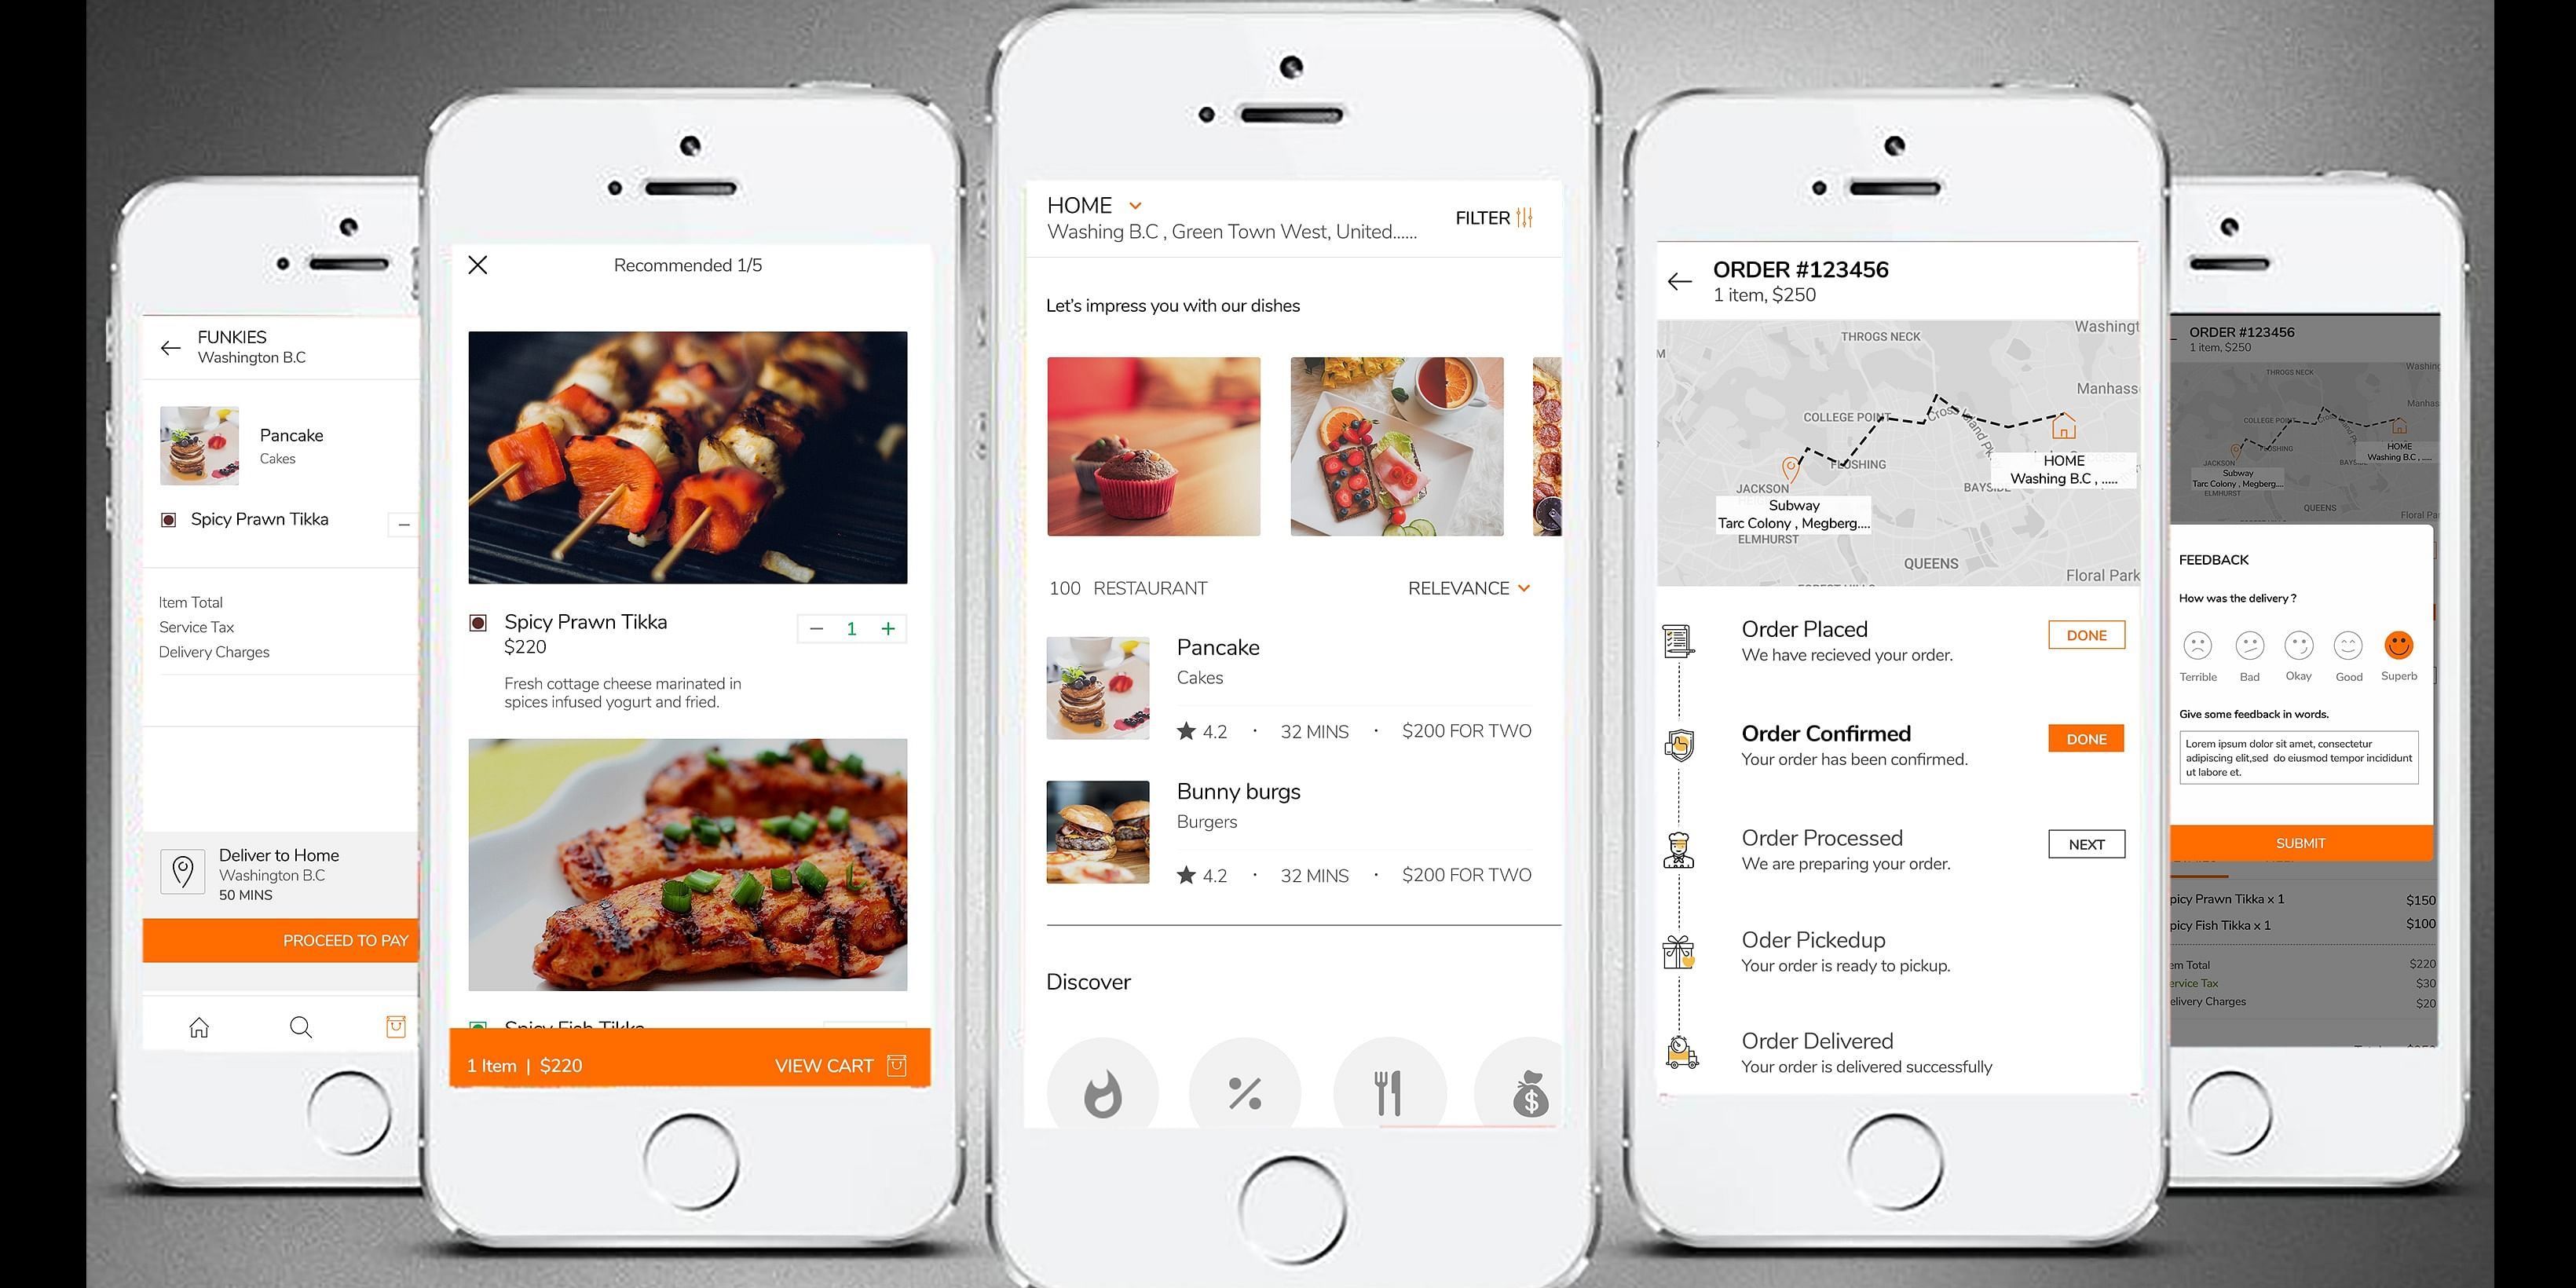 3 Things To Consider While Building an UberEats like App